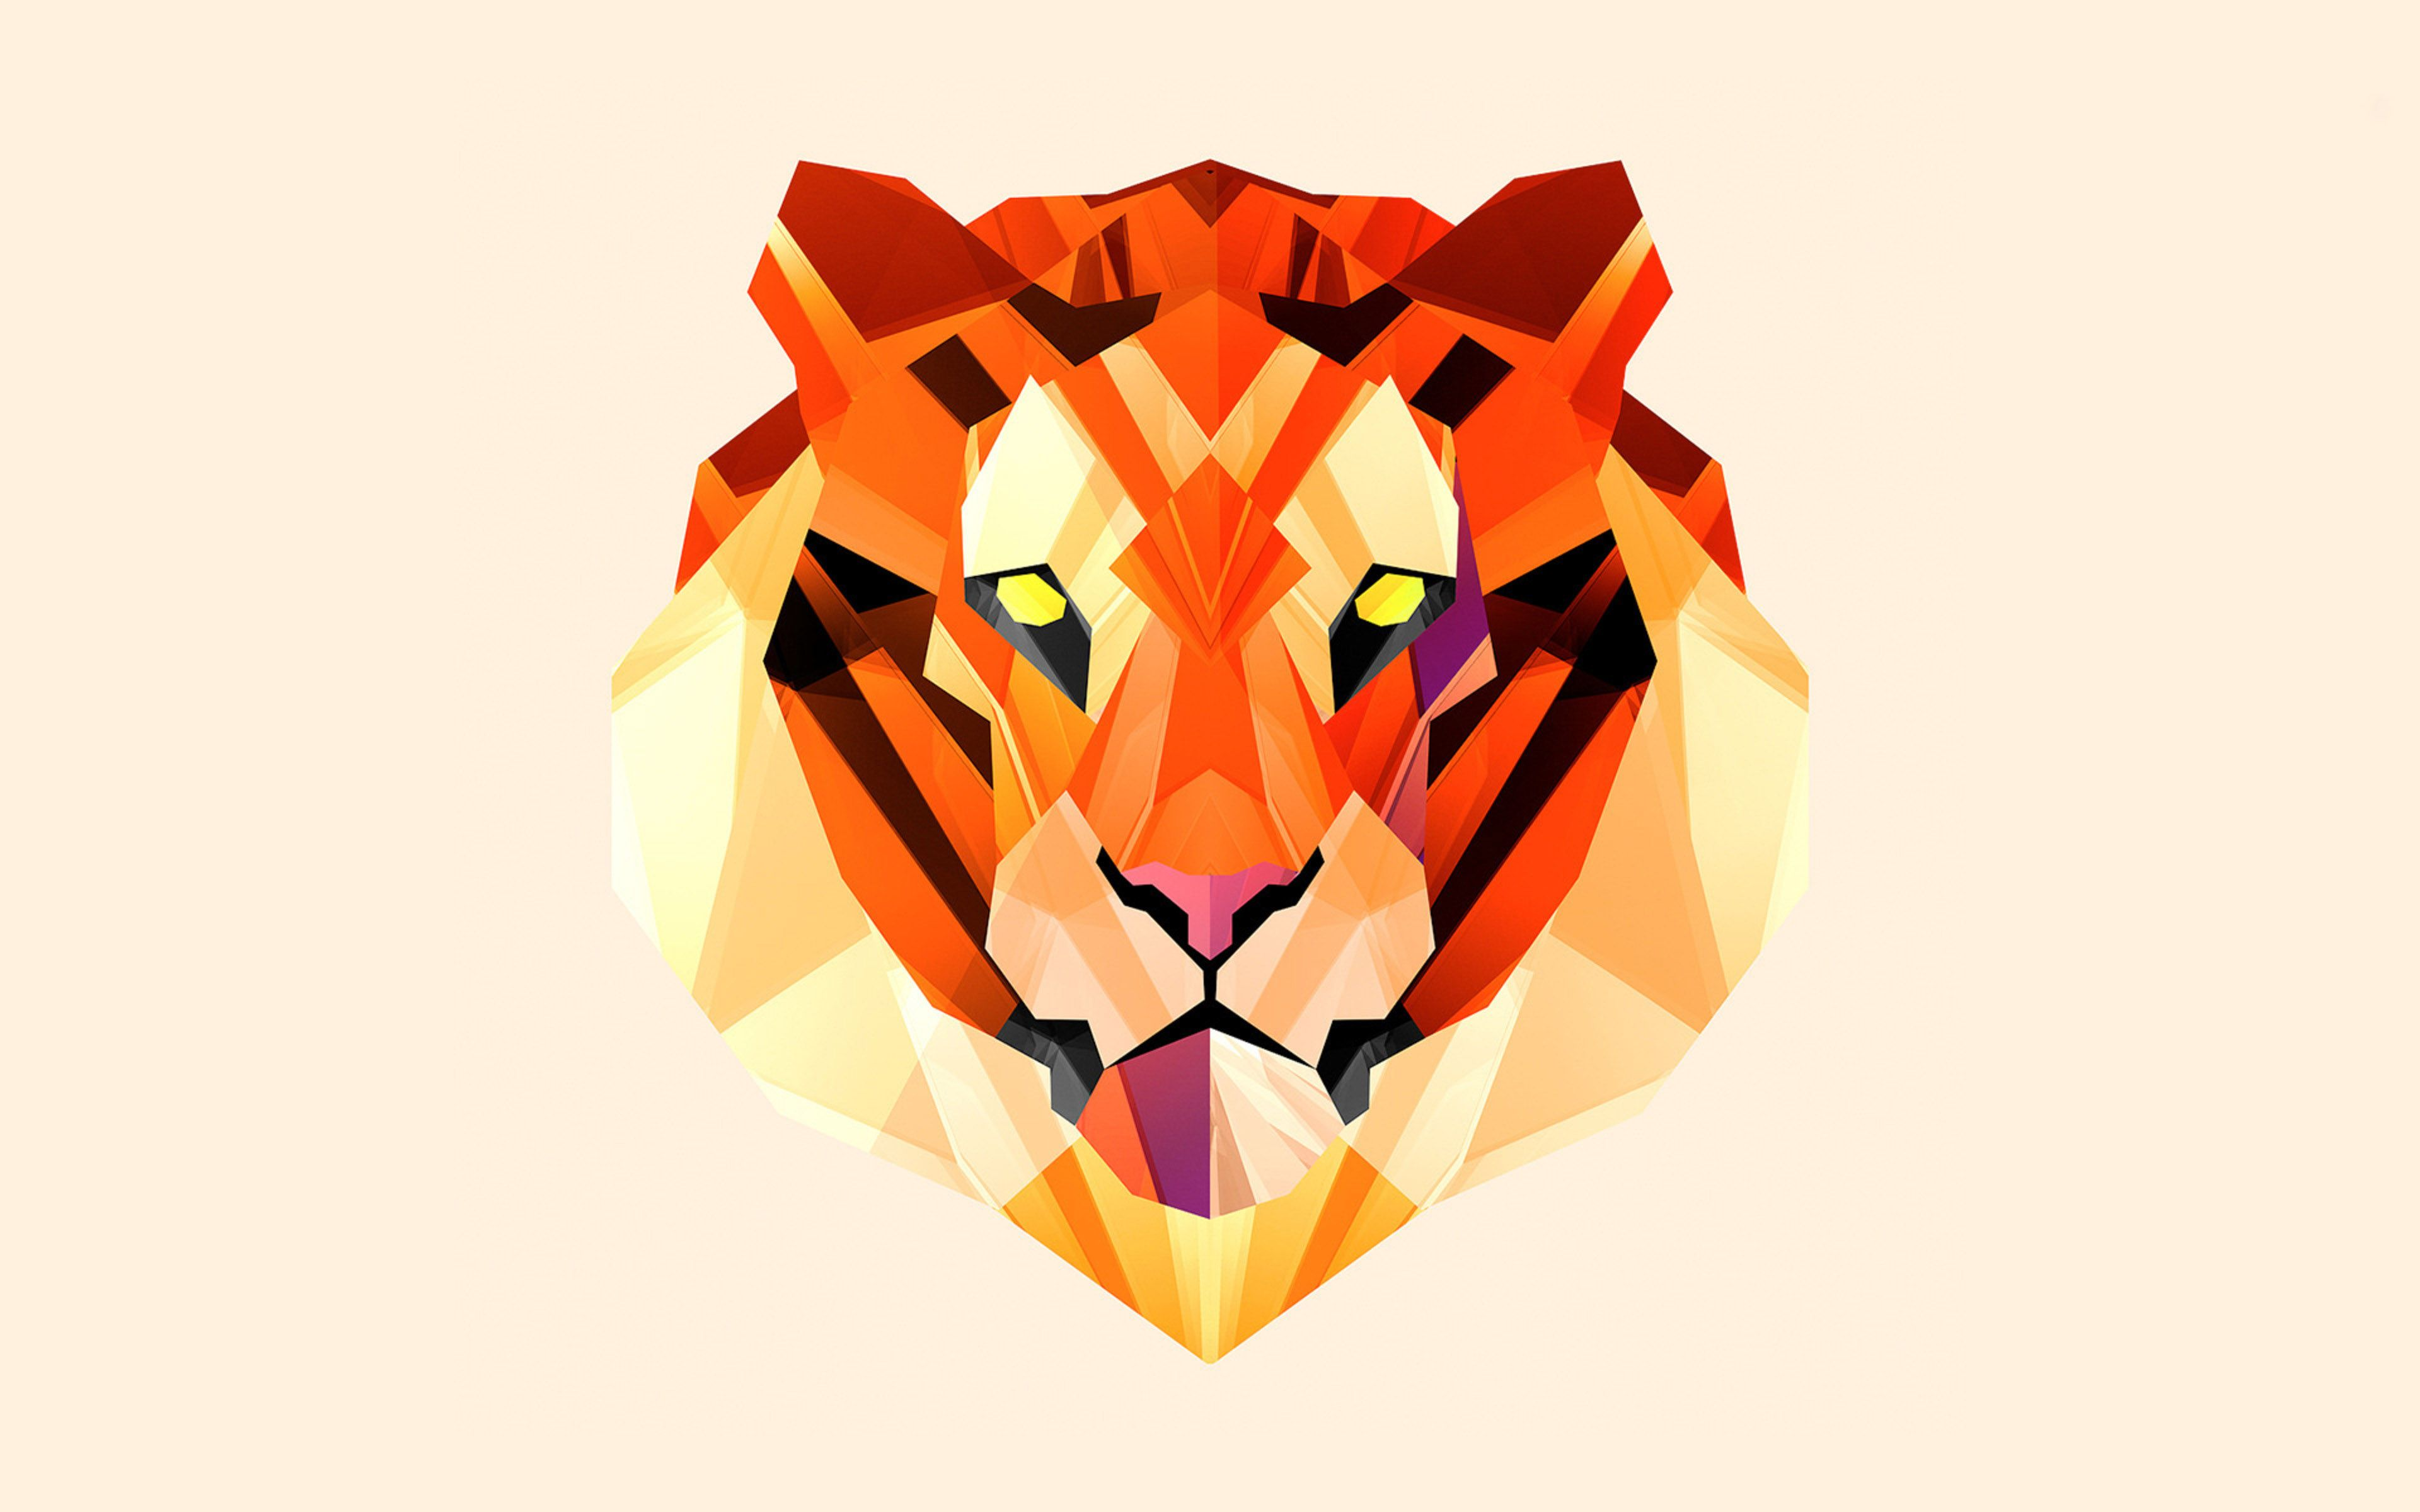 Tiger wallpaper be1 hd wallpaper blue wallpaper abstract tiger wallpaper be1 thecheapjerseys Image collections